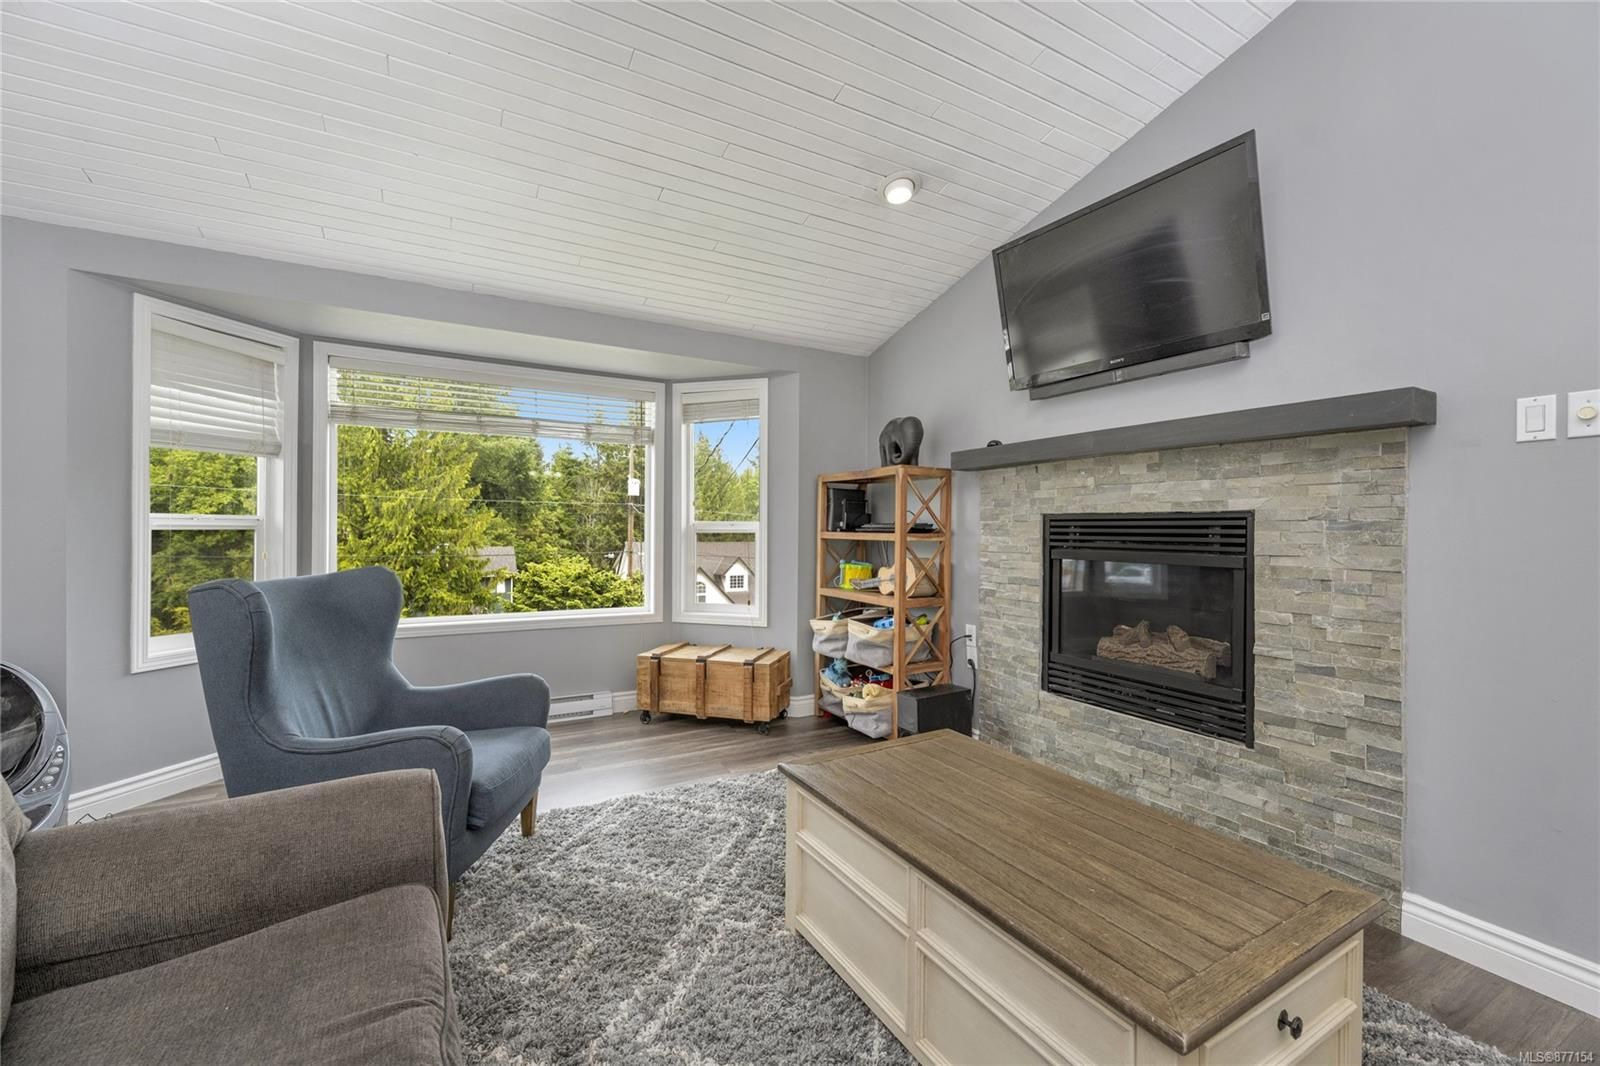 Photo 15: Photos: 2376 Terrace Rd in : ML Shawnigan House for sale (Malahat & Area)  : MLS®# 877154